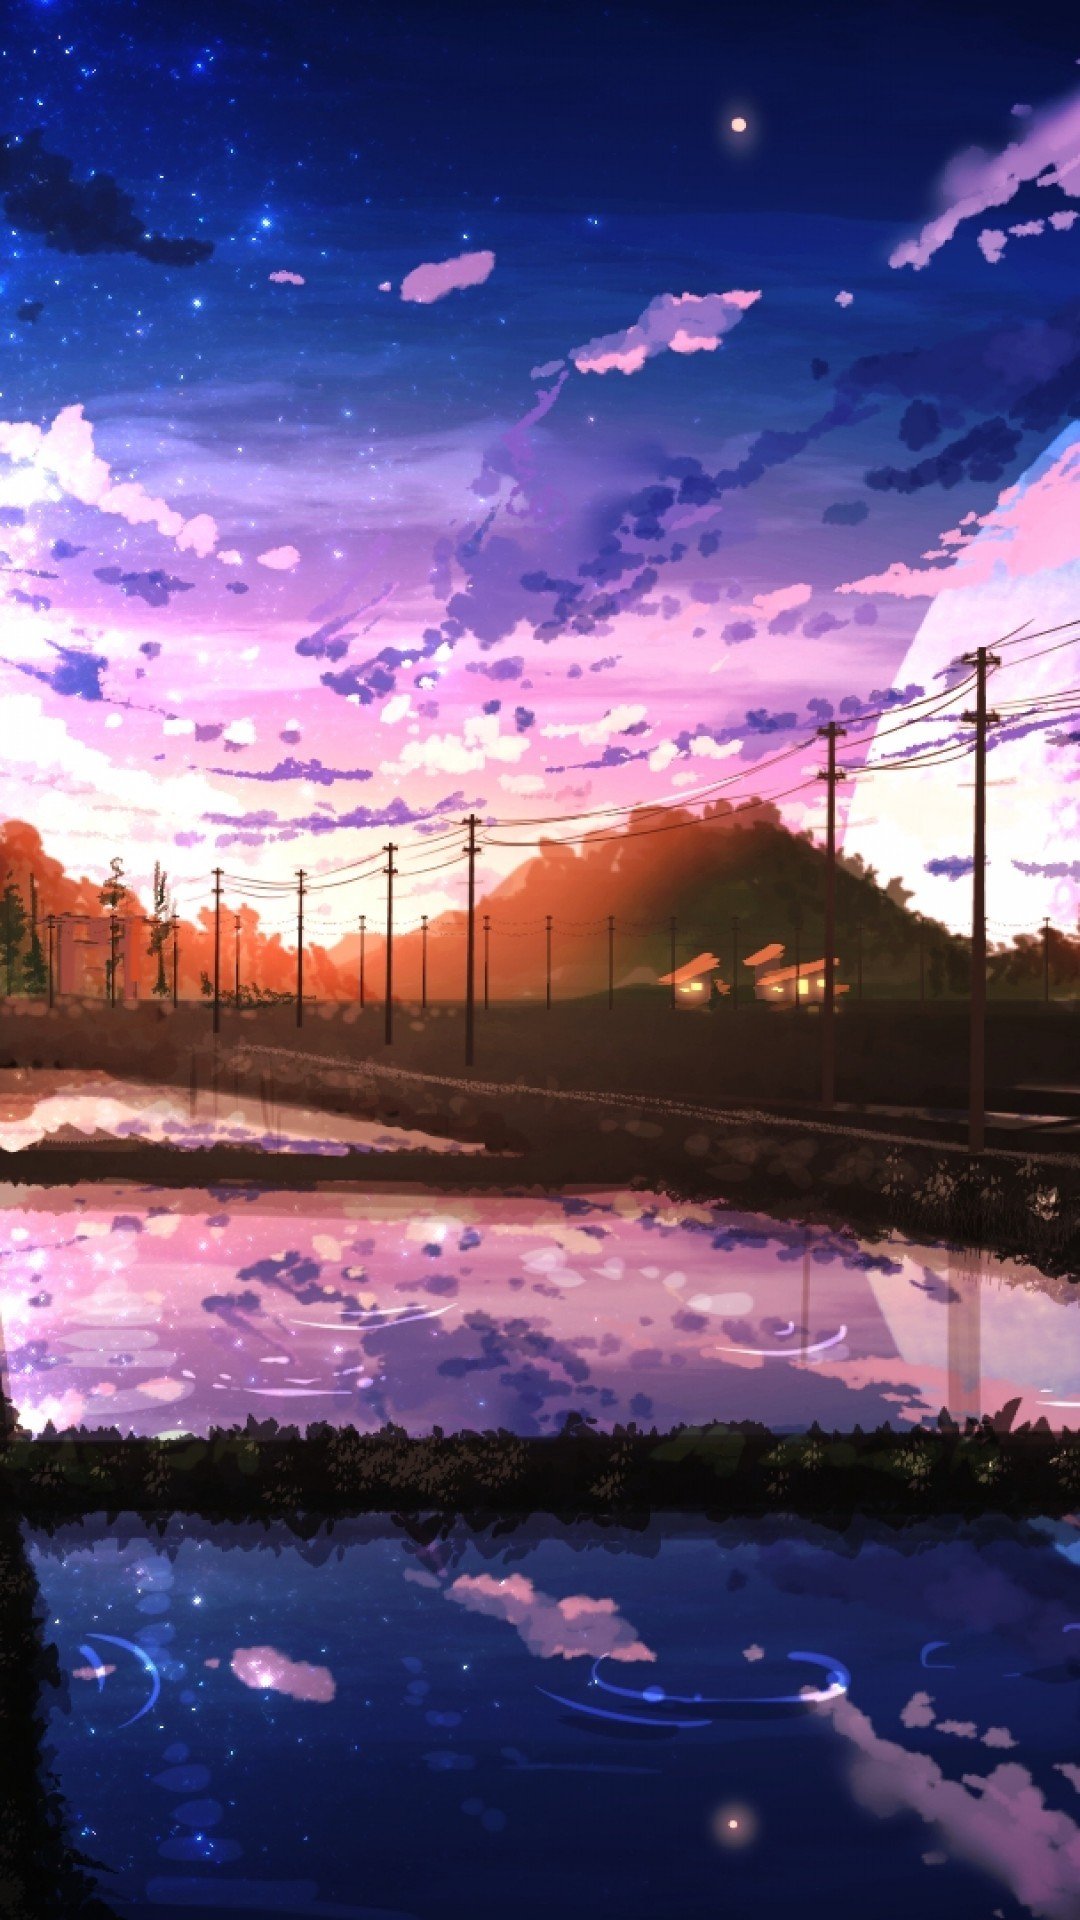 Anime Landscape, Scenic, Moon, Painting, Sky